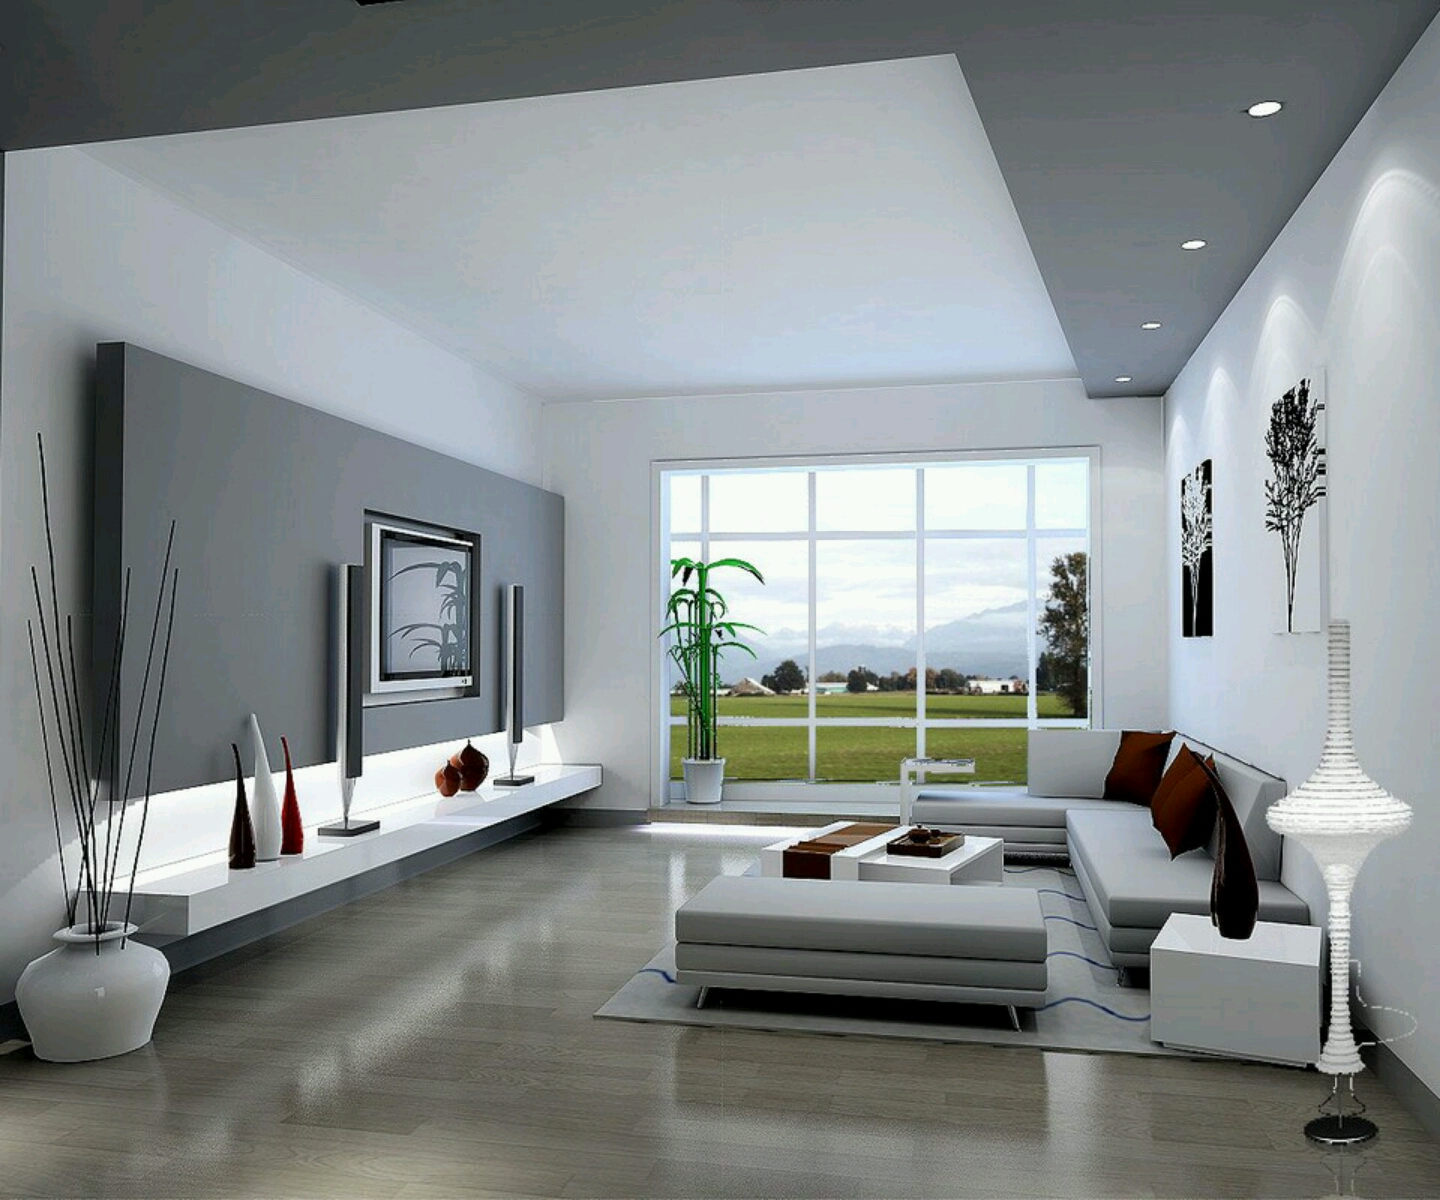 New home designs latest modern living rooms interior for Drawing room designs interior